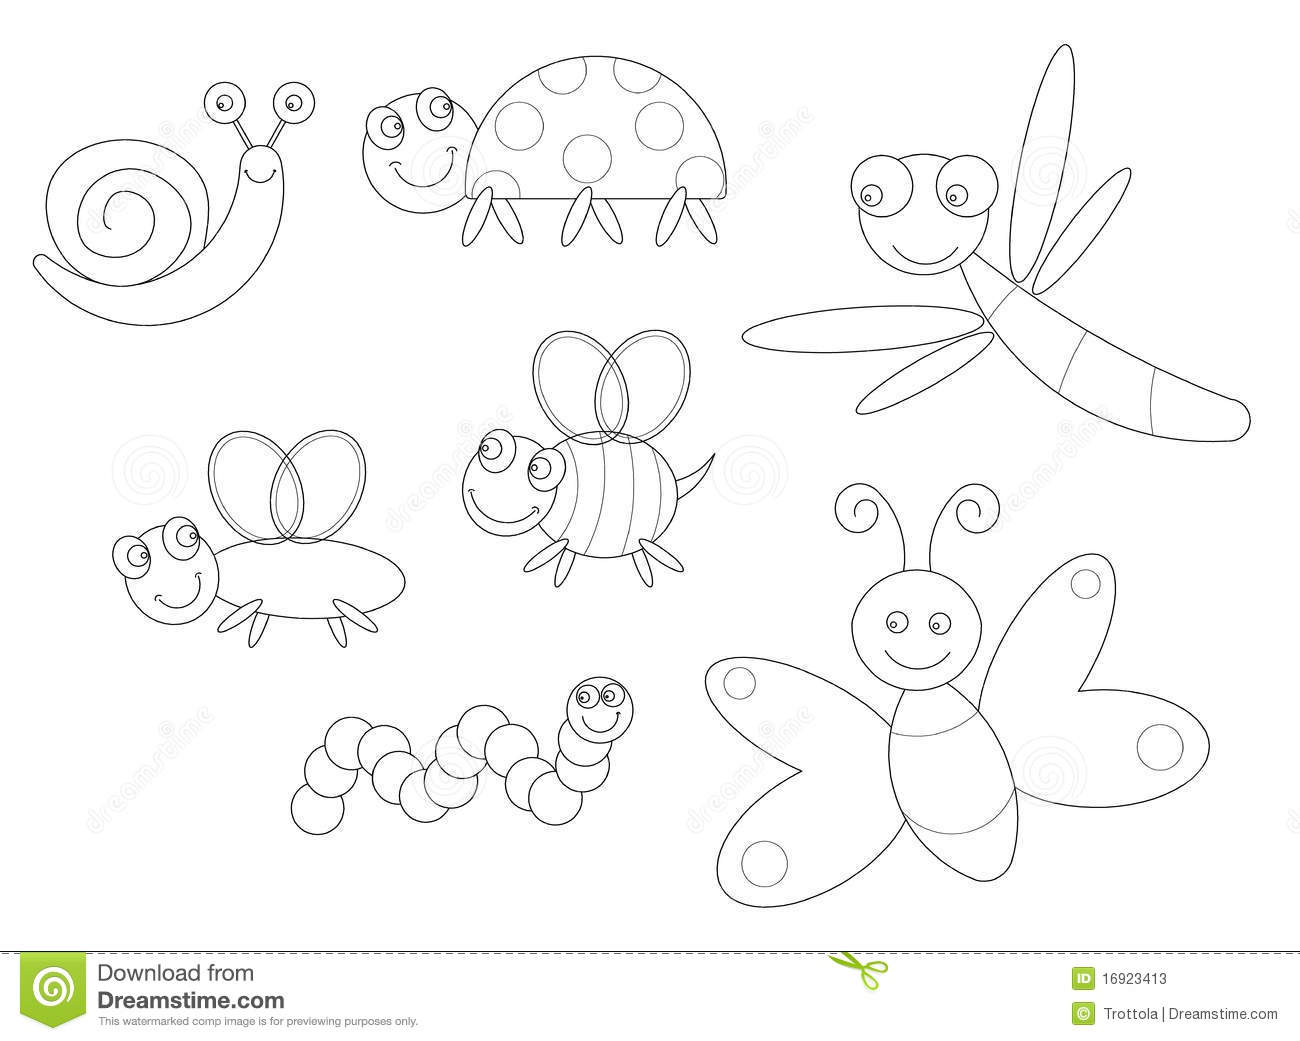 insects coloring pages - bugs coloring stock vector illustration of black kids